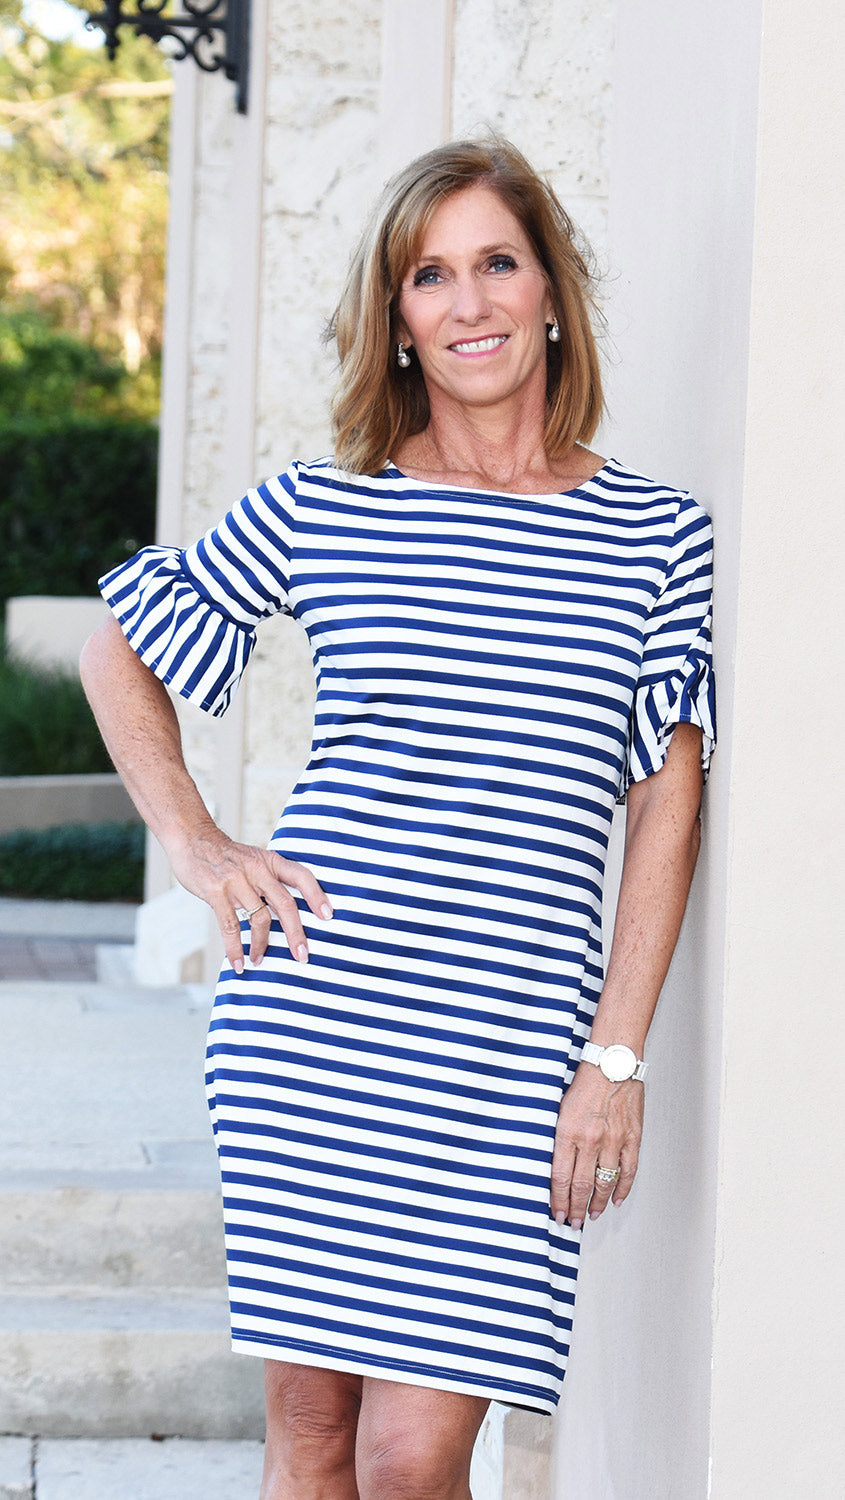 Dockside Dress - Wide Navy/White Stripe